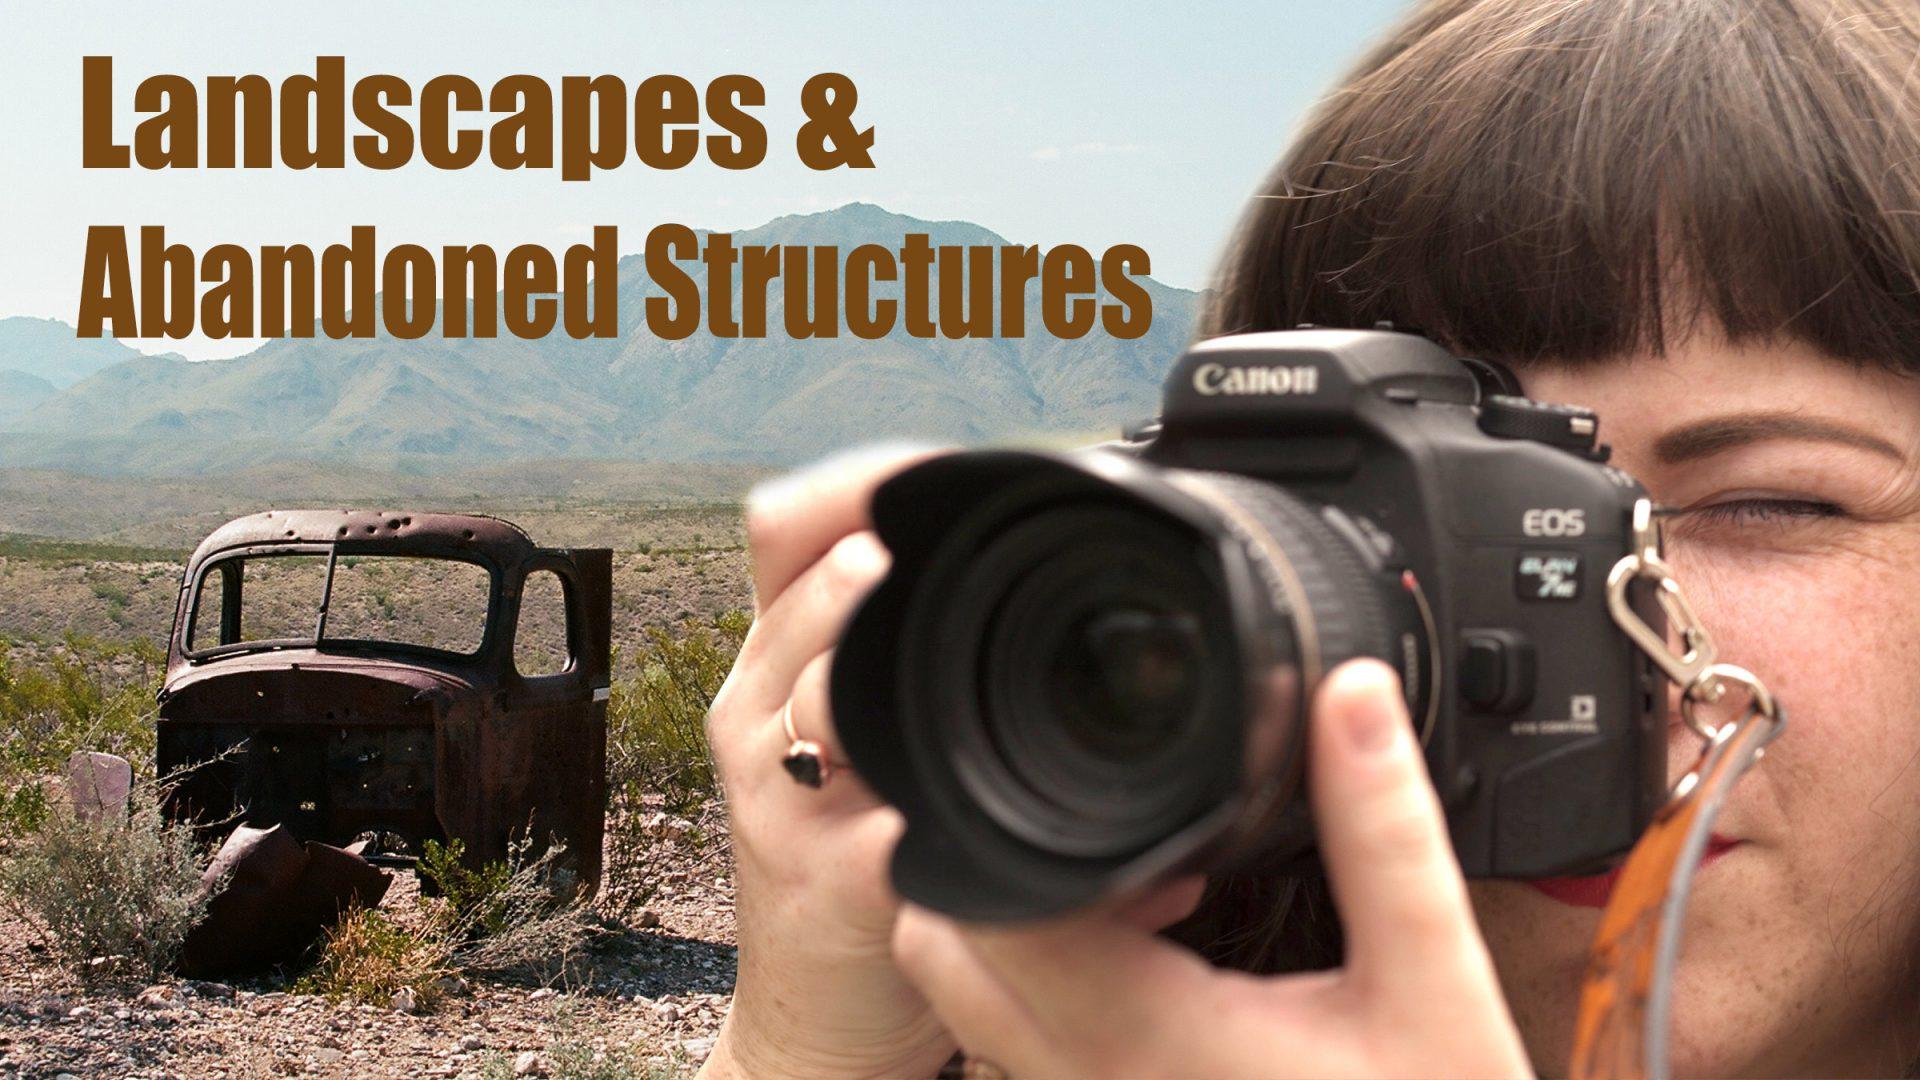 landscapes-abandoned-structures-featured